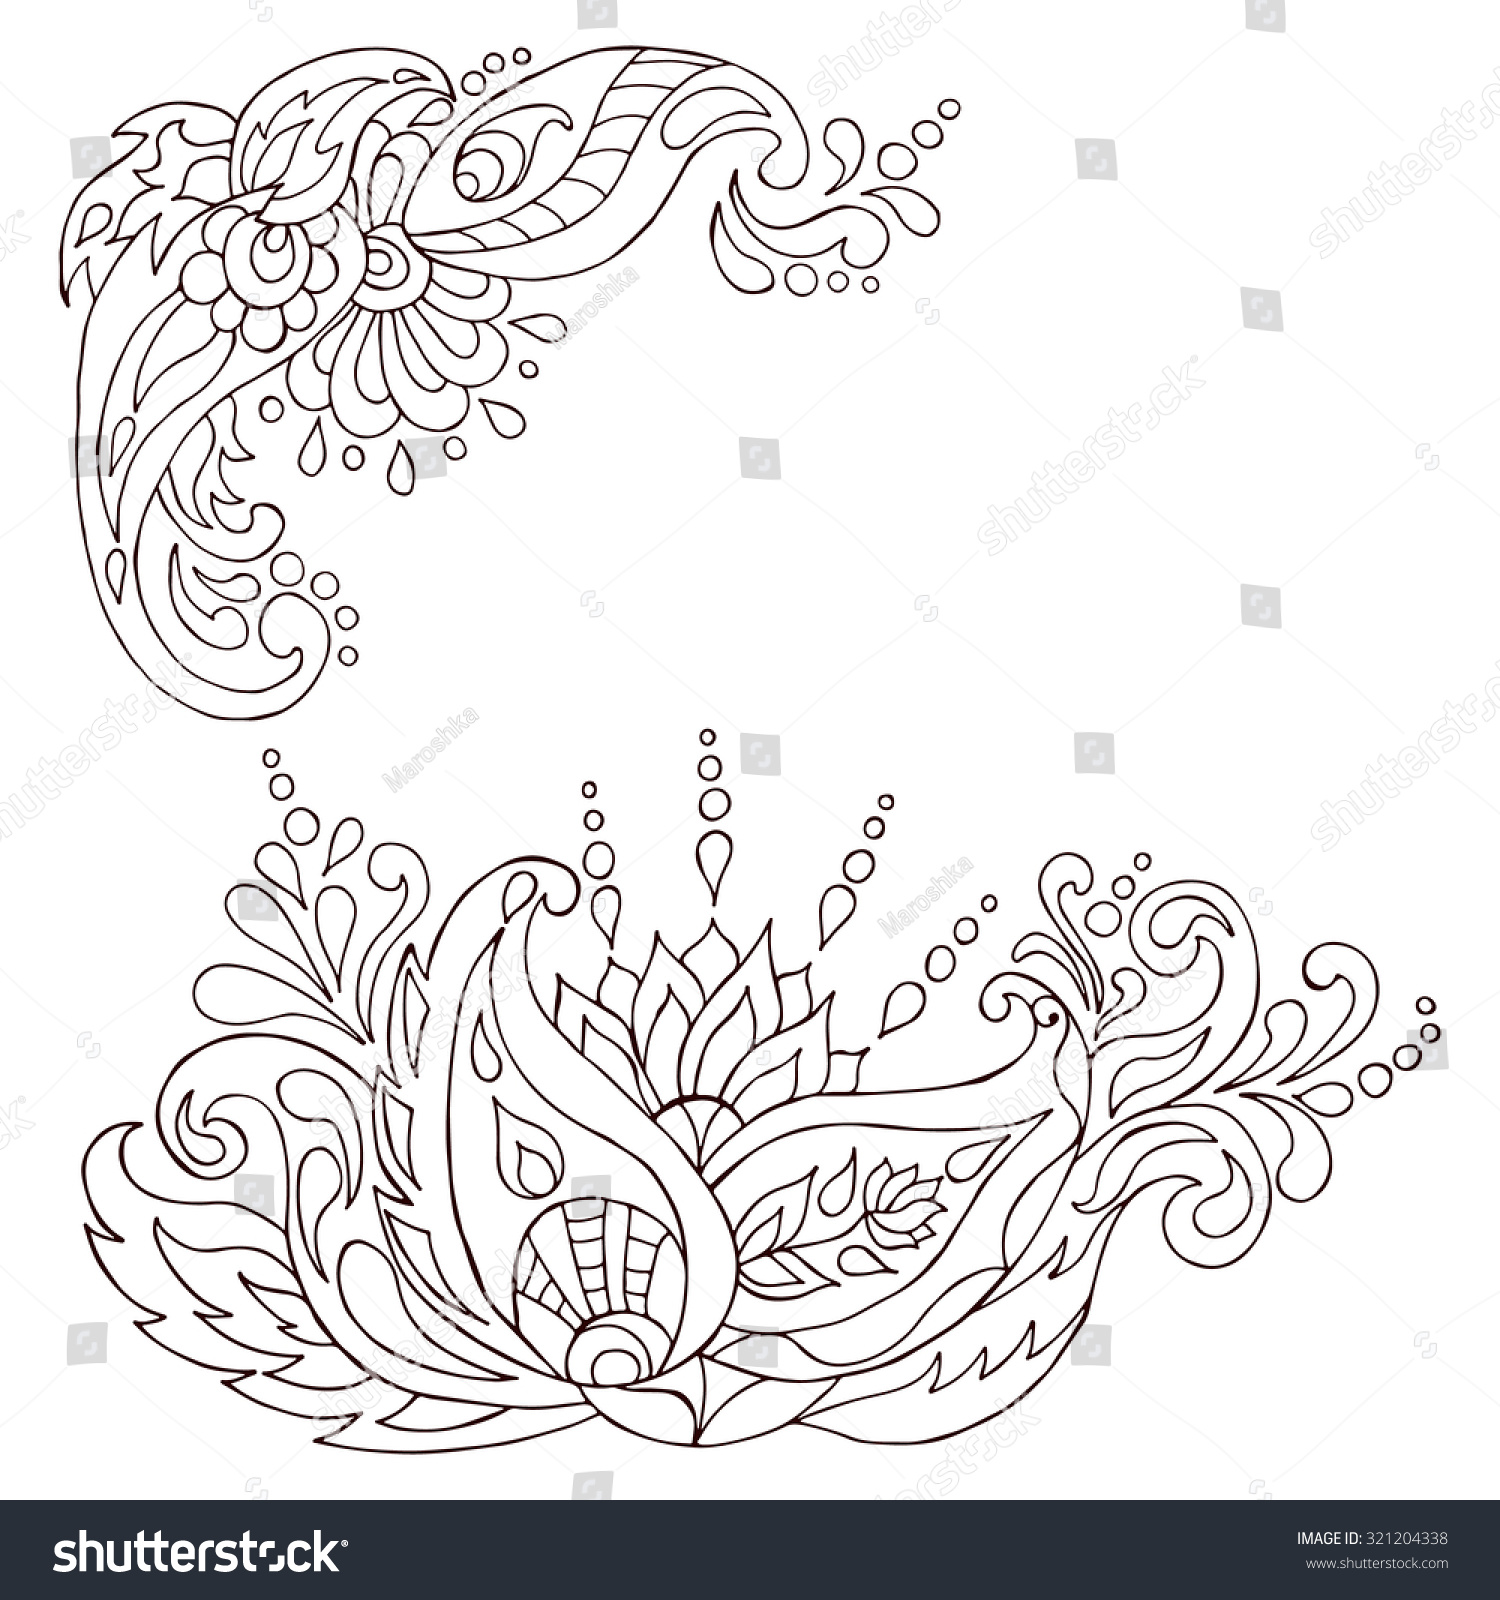 Coloring pages of mehndi hand pattern - Henna Tattoo Doodle Vector Elements Mehndi Design For Hands Indian Persian And Turkish